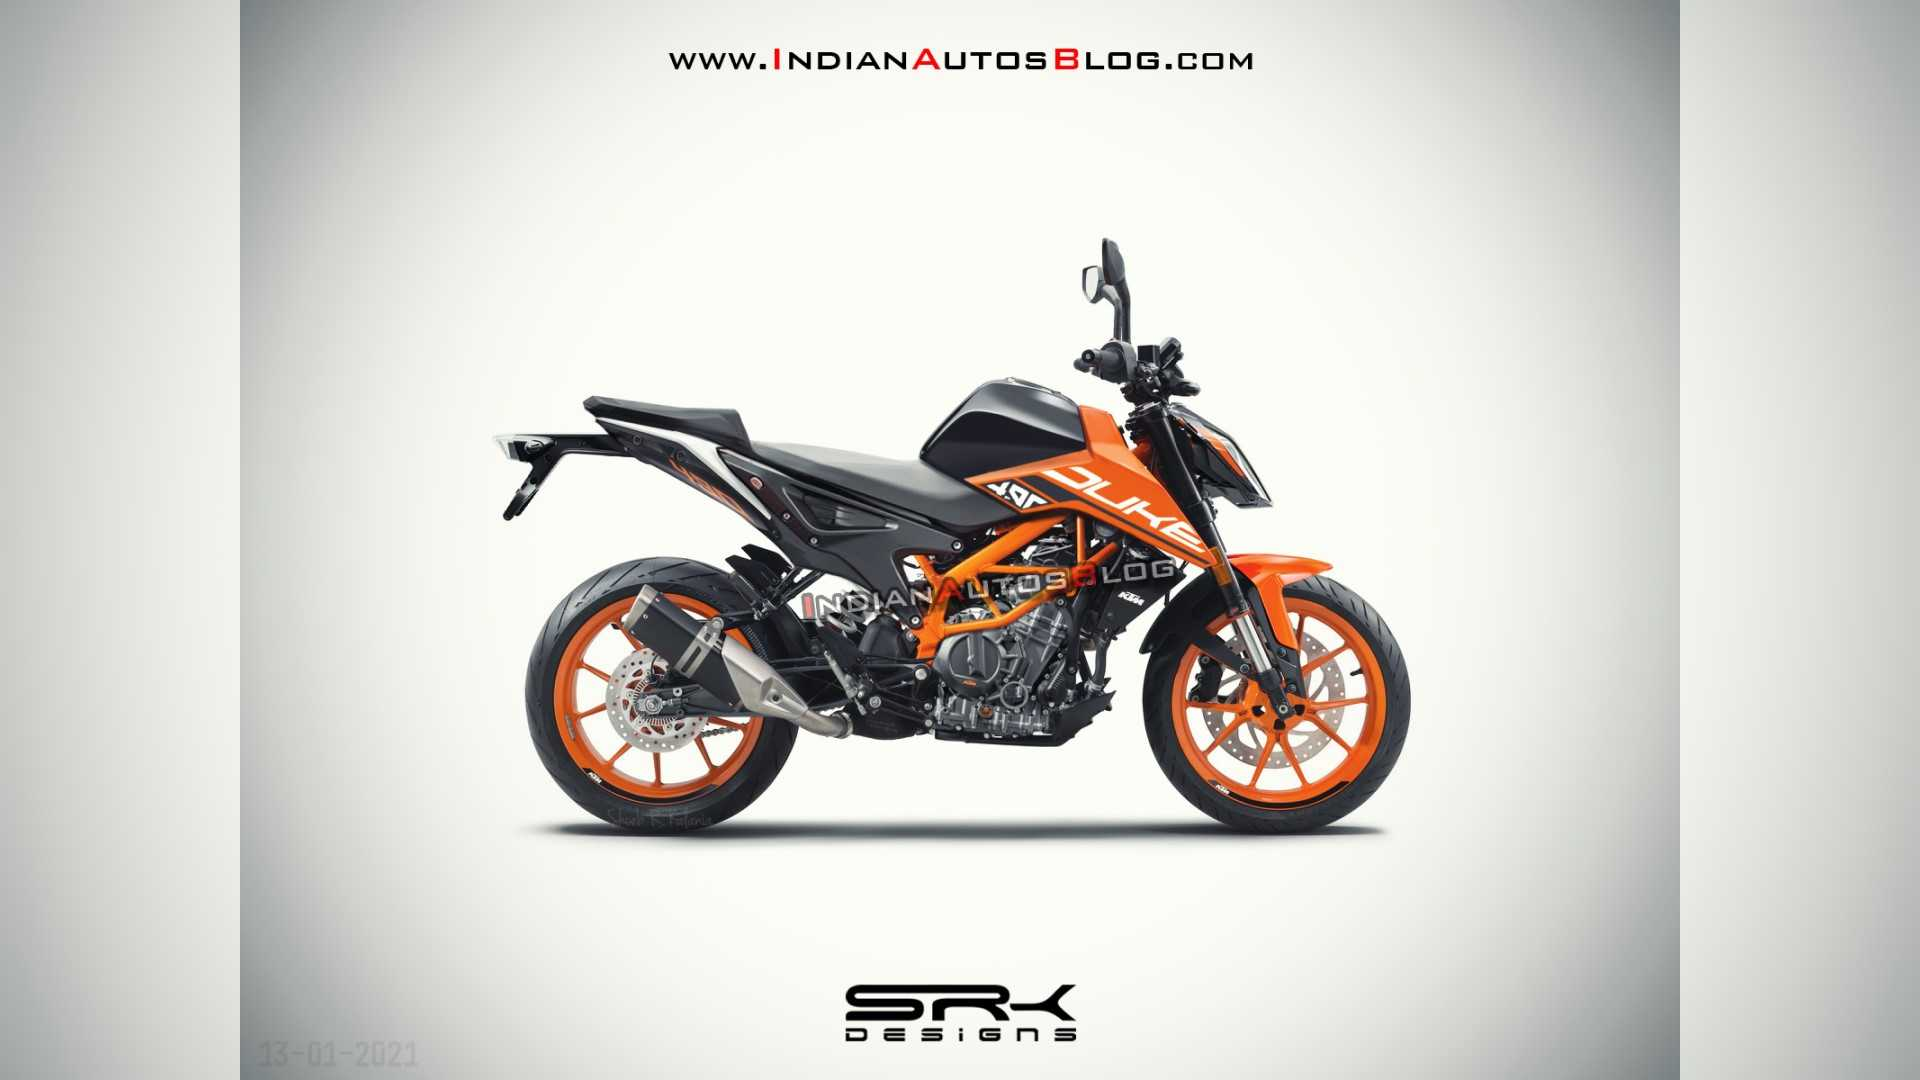 Designer Imagines The Future KTM 490 Adventure And Duke